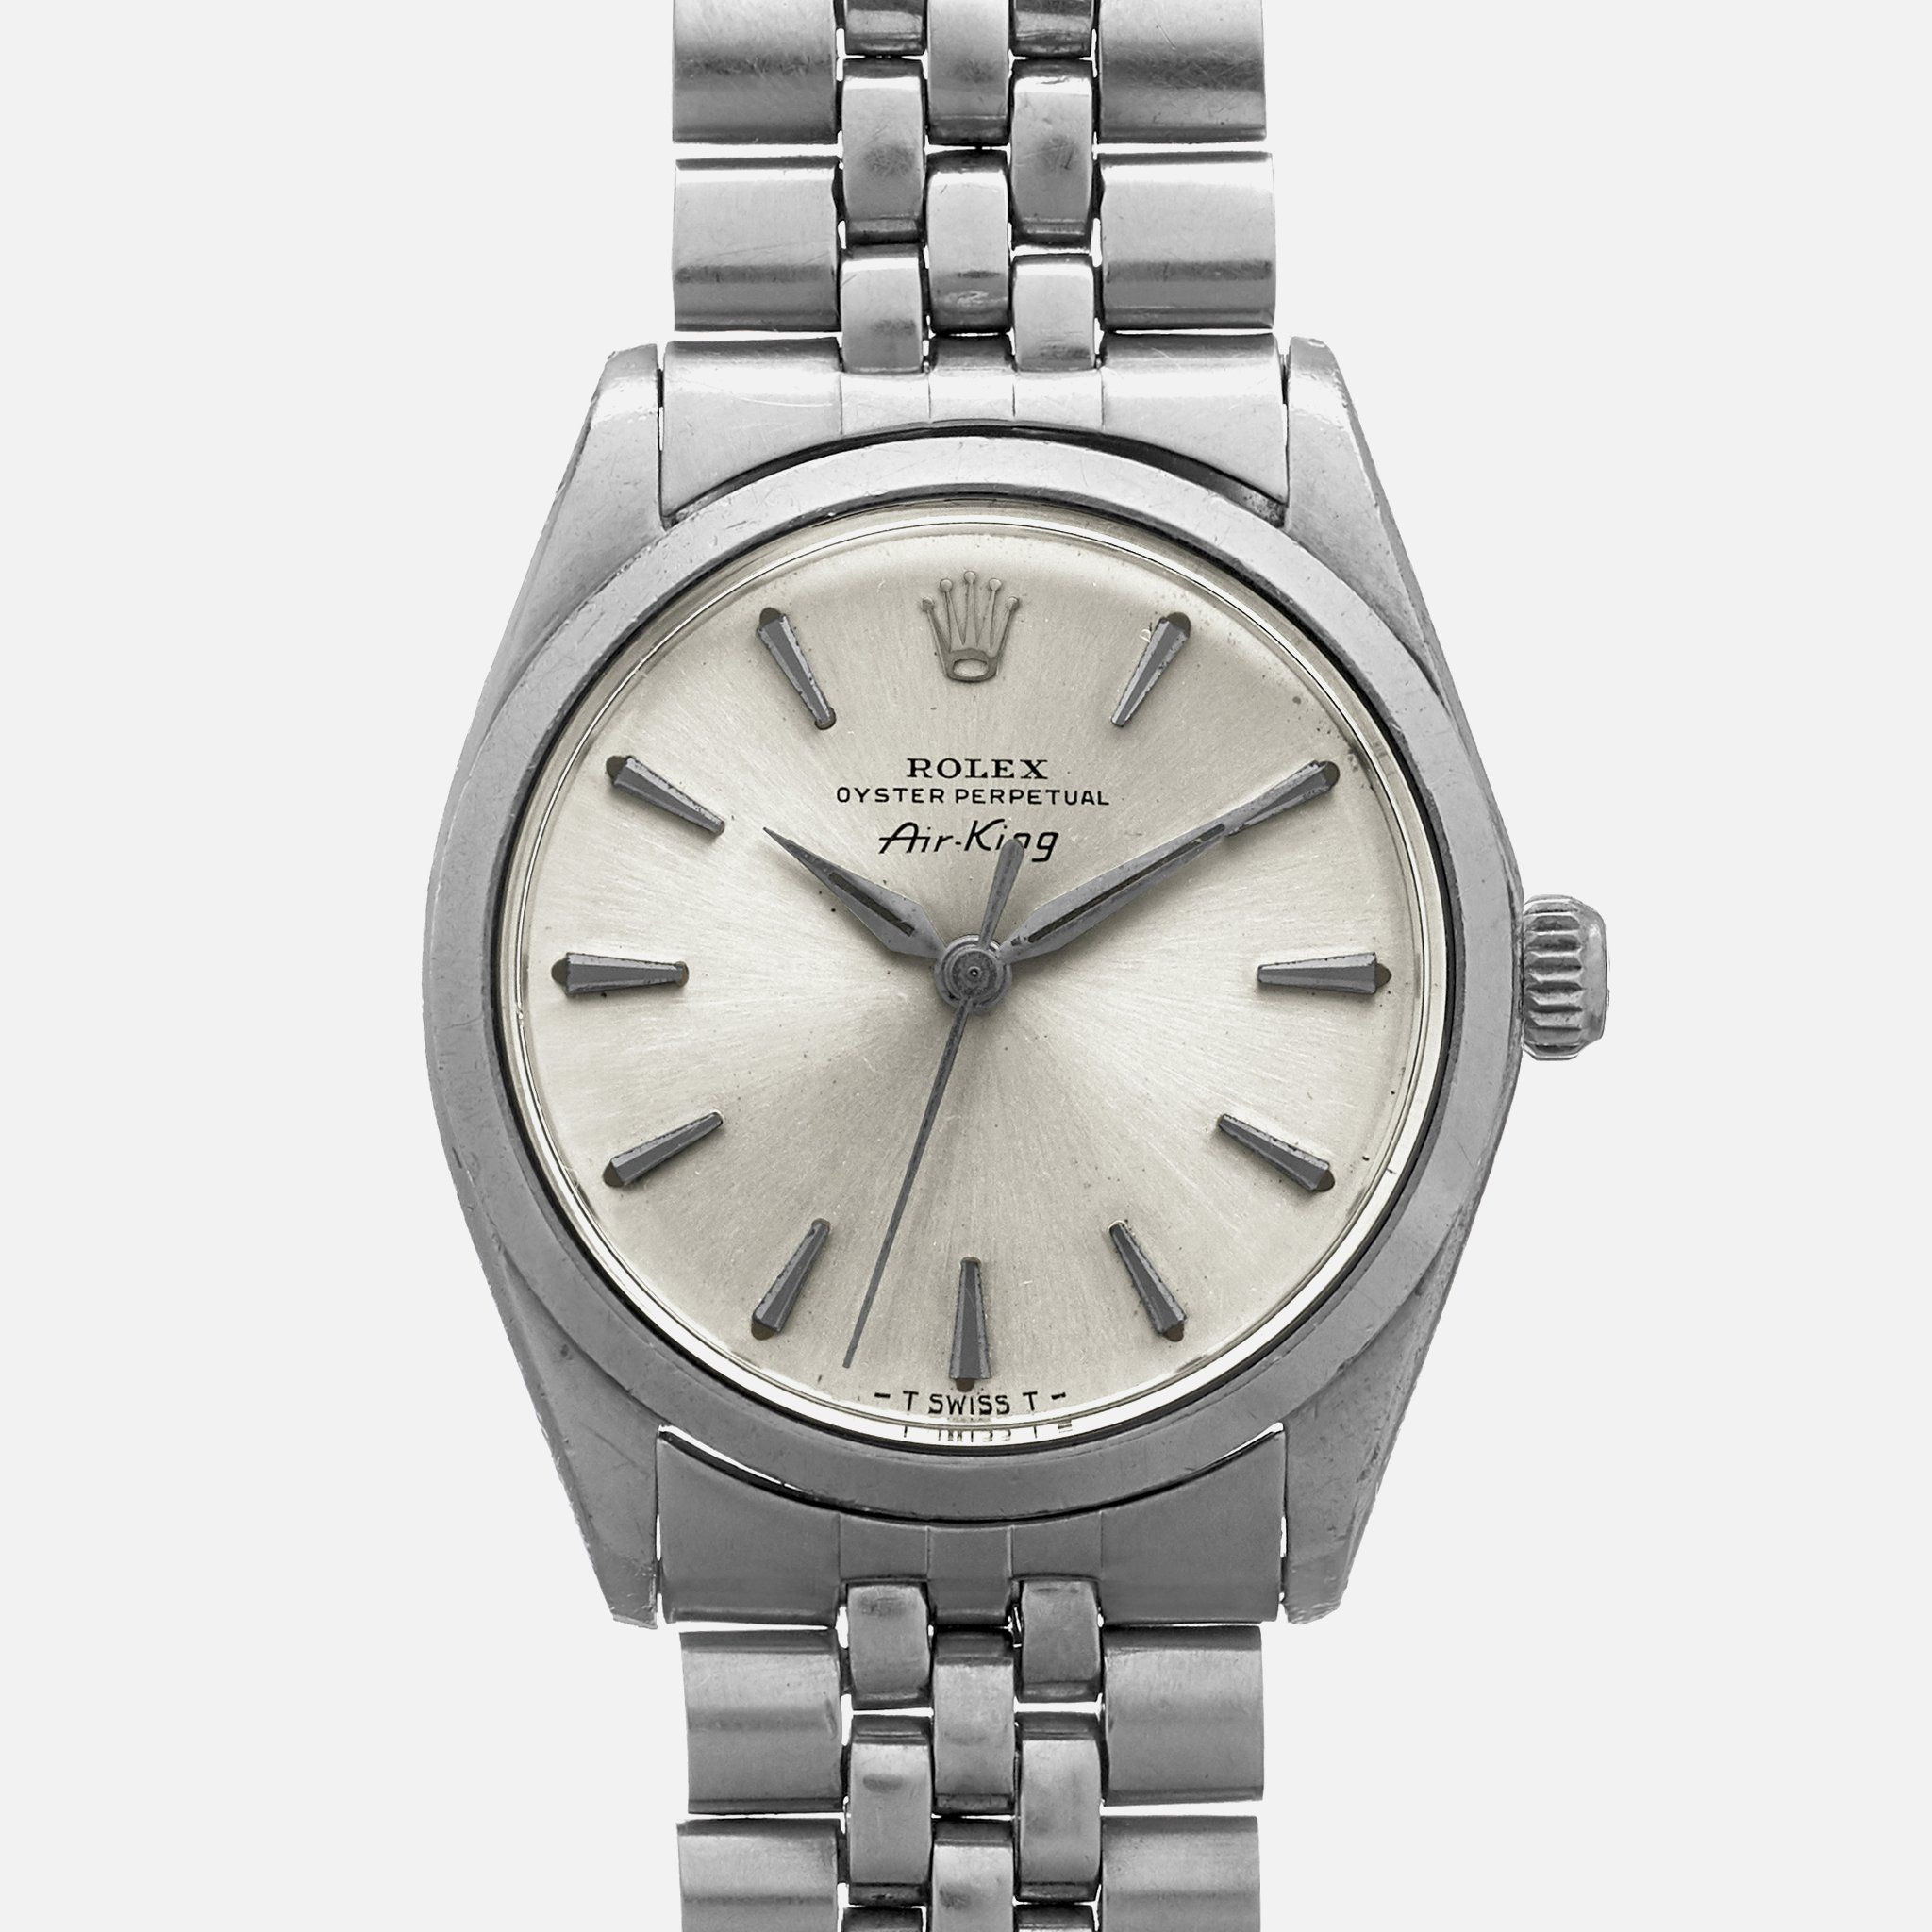 1965 Rolex AirKing Ref. 5500 in 2020 Rolex air king